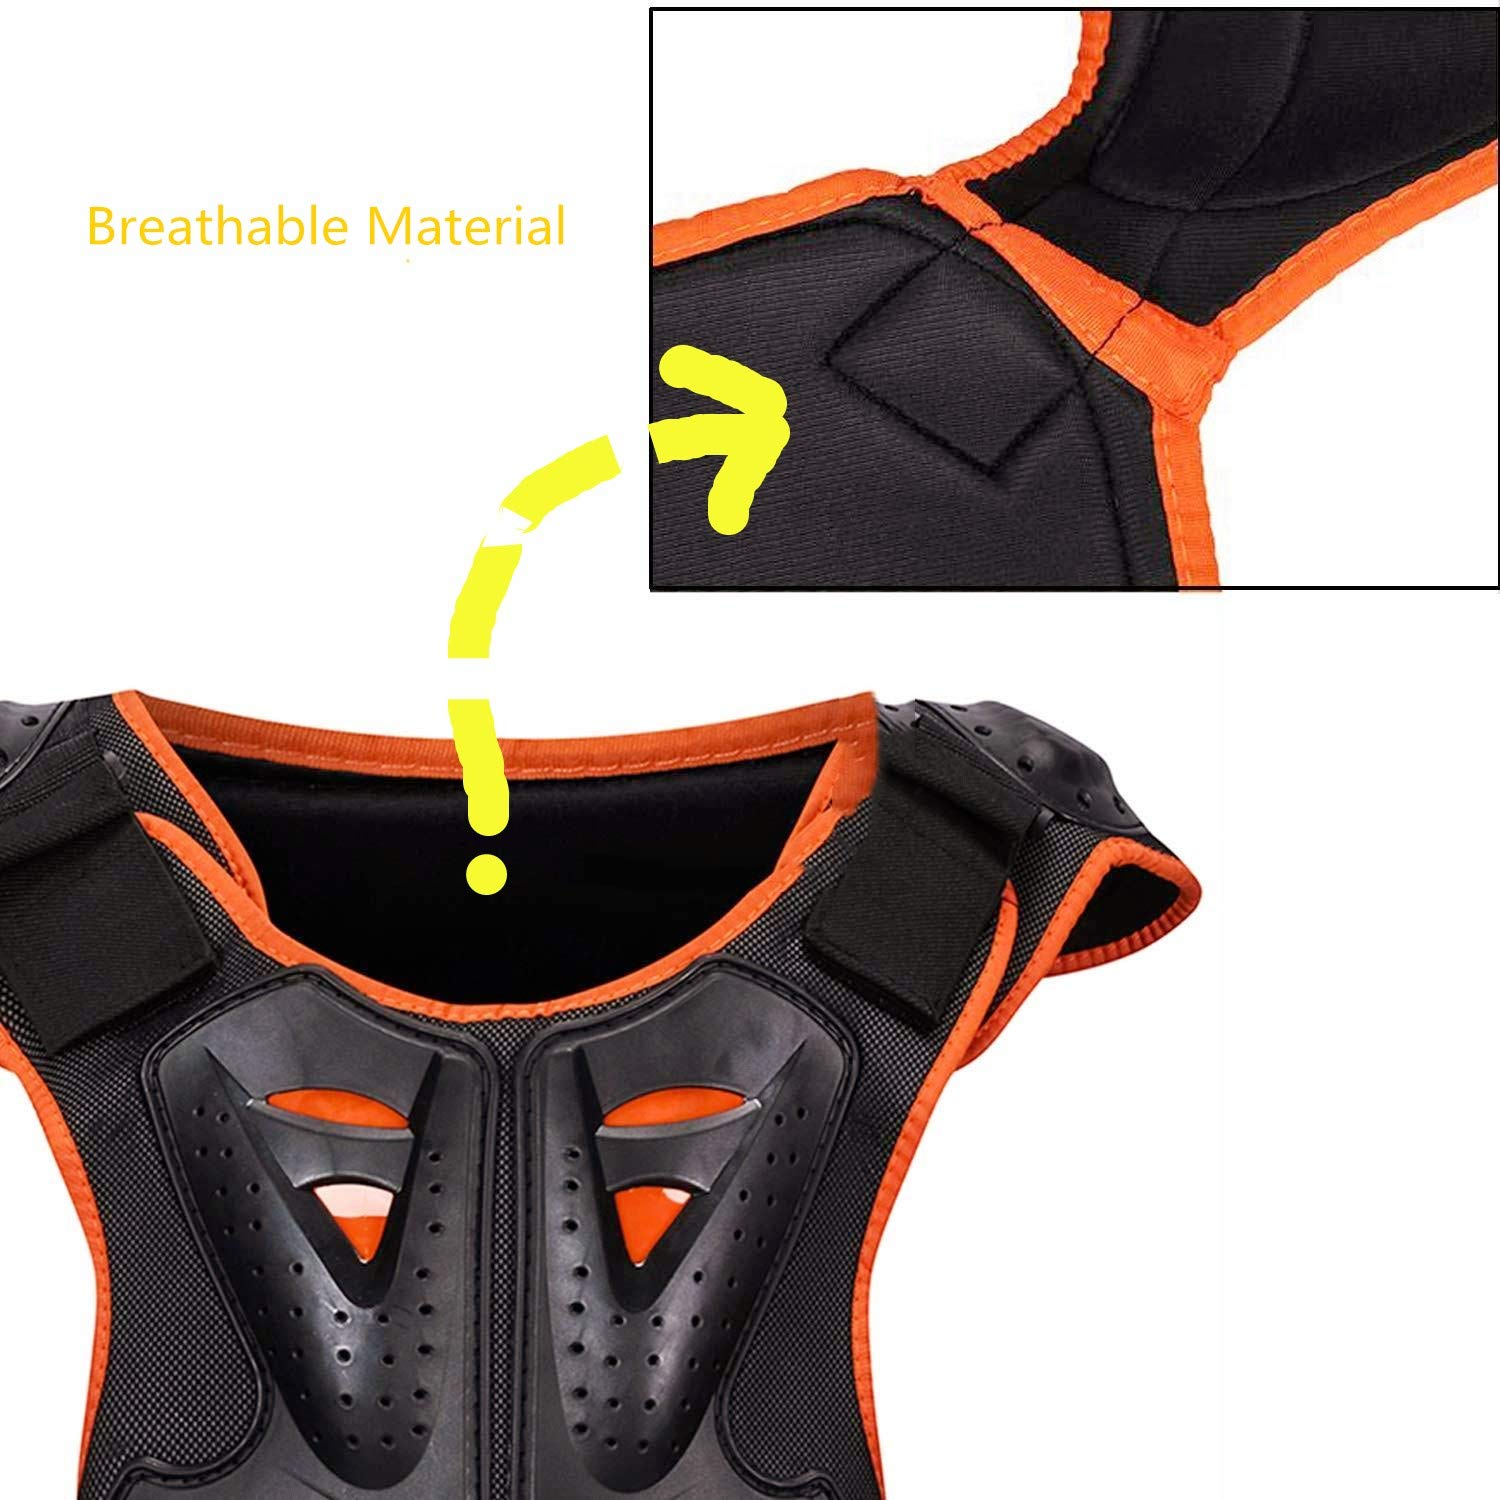 Kids Body Chest Spine Protector Armor Protective Vest Reflective Gear For Dirt Bike Skiing Skating Sport Size Medal by color tree (Image #5)